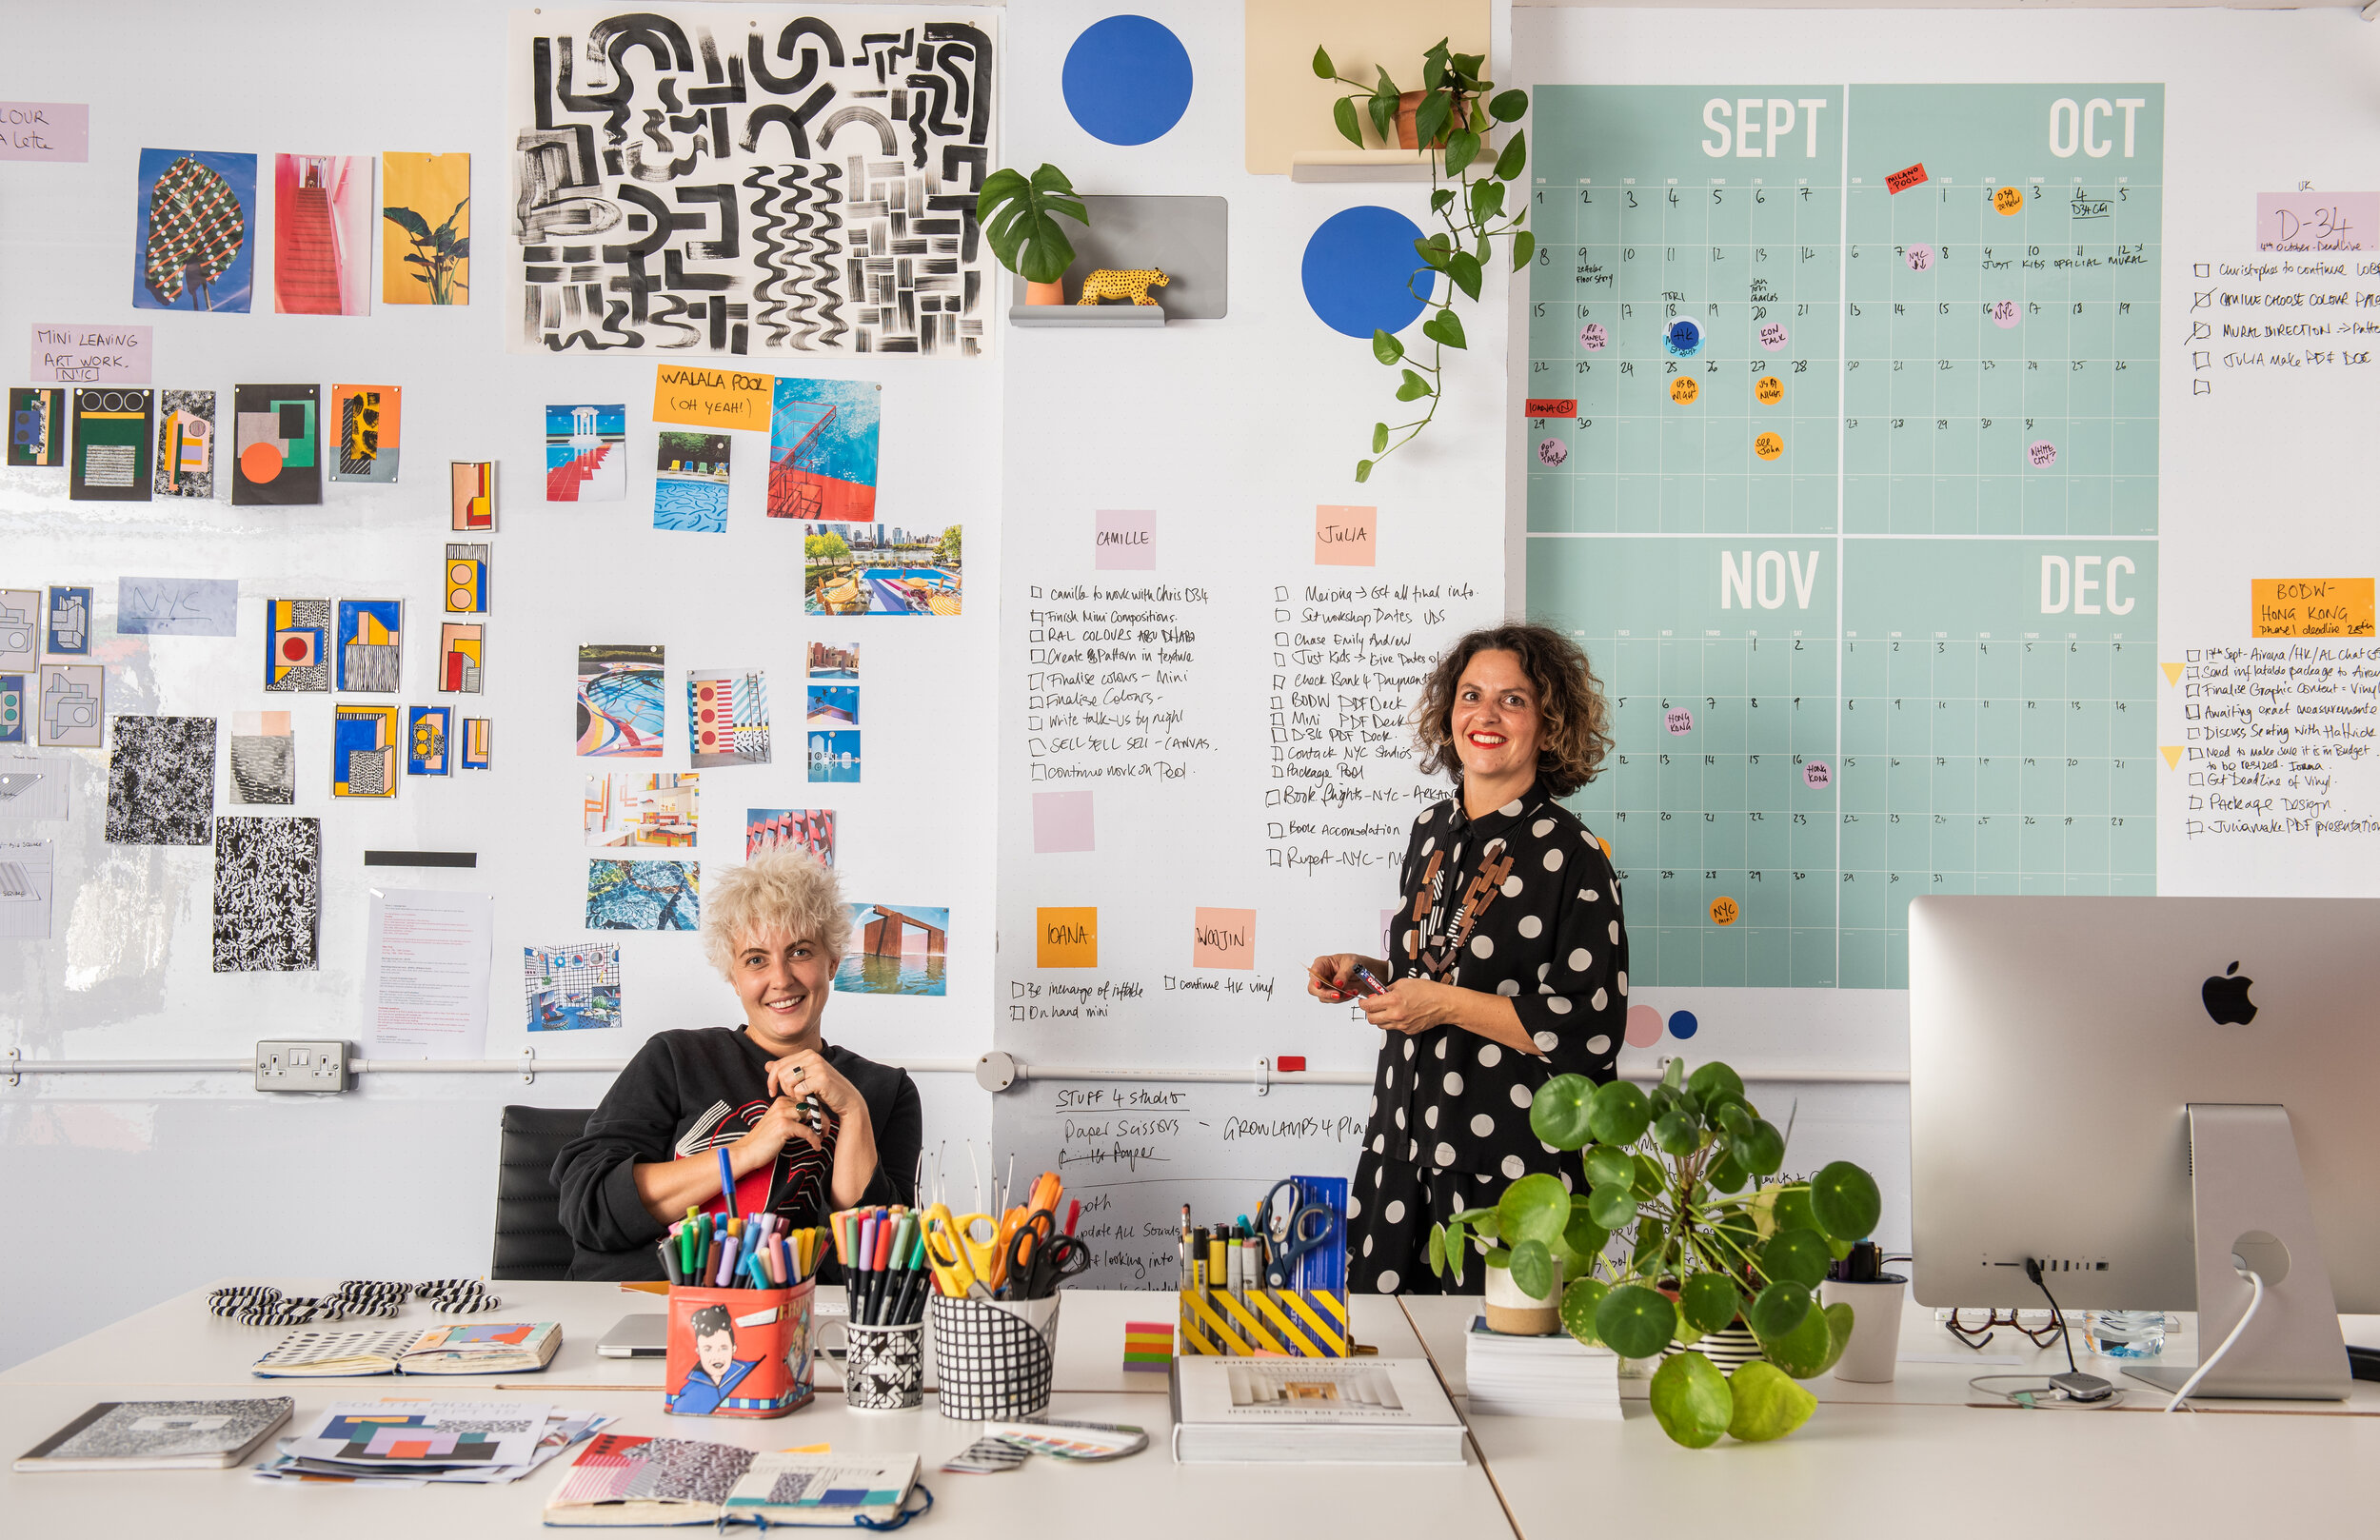 Julia Jomaa (left) & Camille Walala (right) | Photography by Charles Emerson